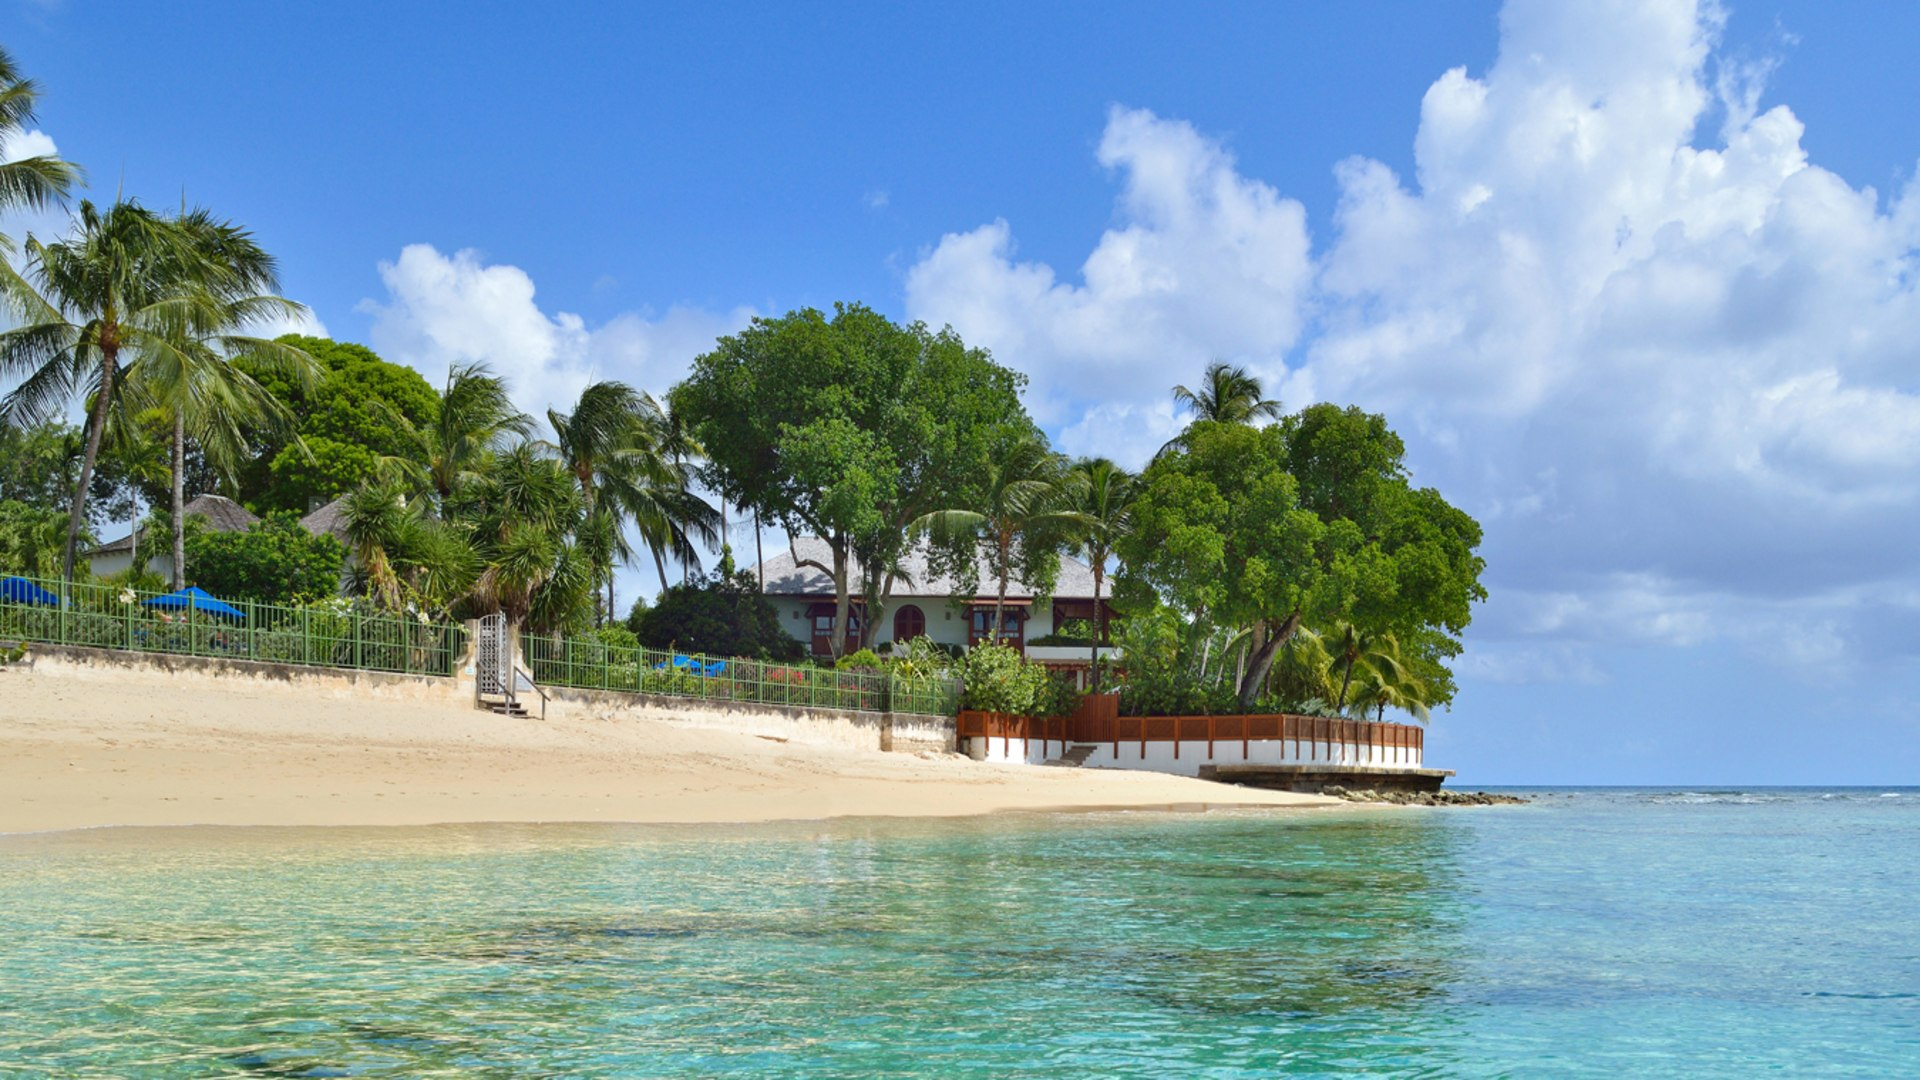 Located on the point of Gibbs Beach & Carlton Bay